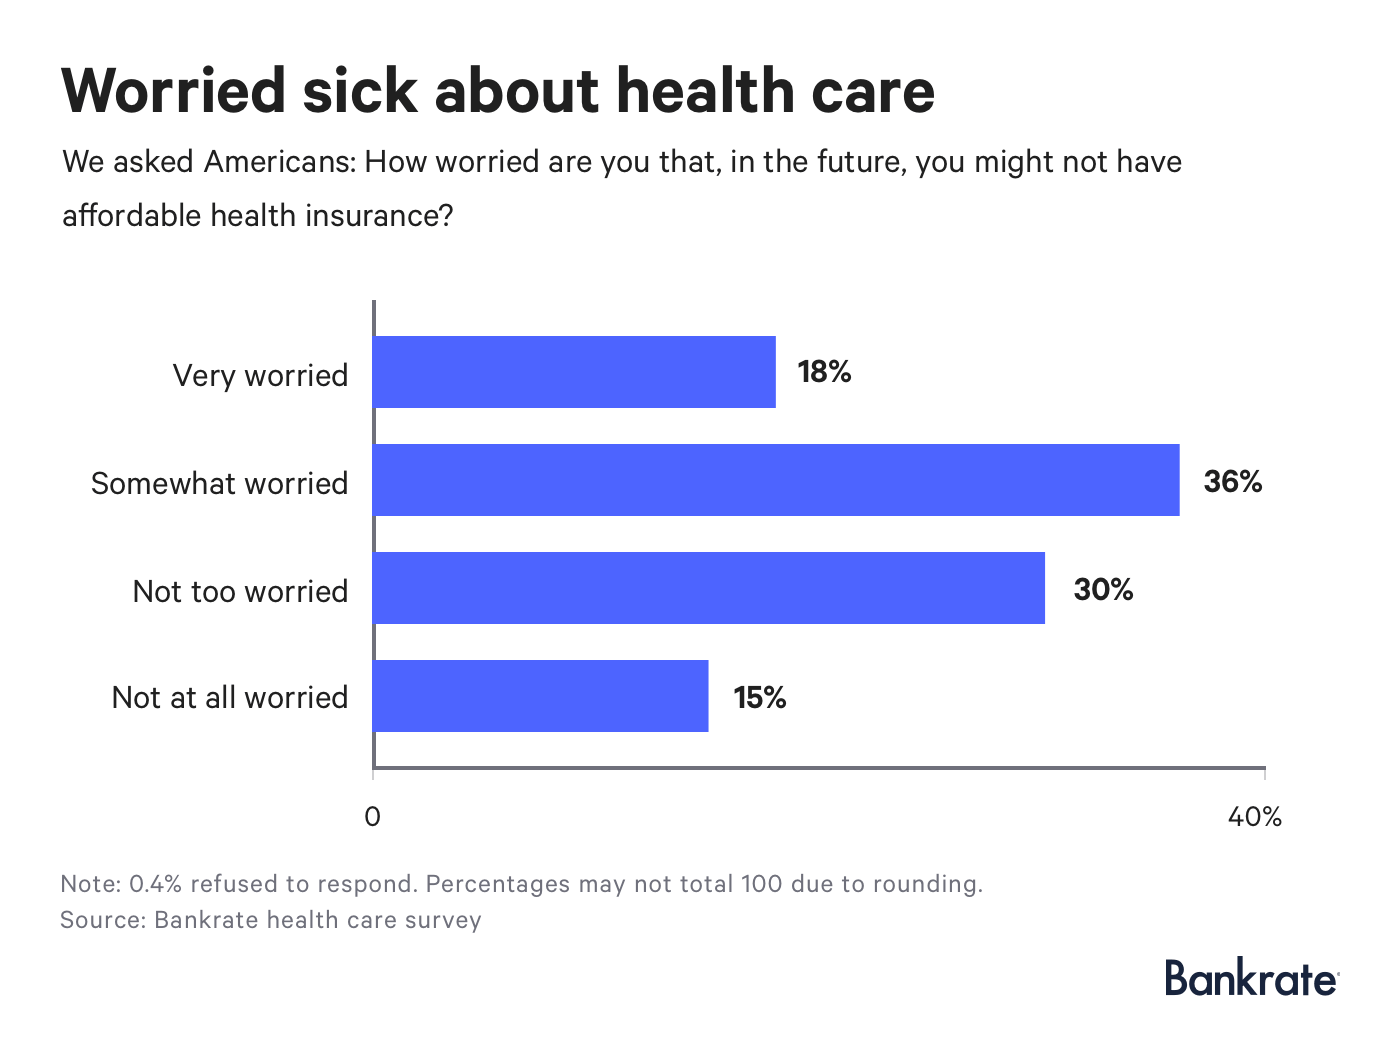 Chart: 36% of respondents revealed they are somewhat worried about not having affordable health insurance.